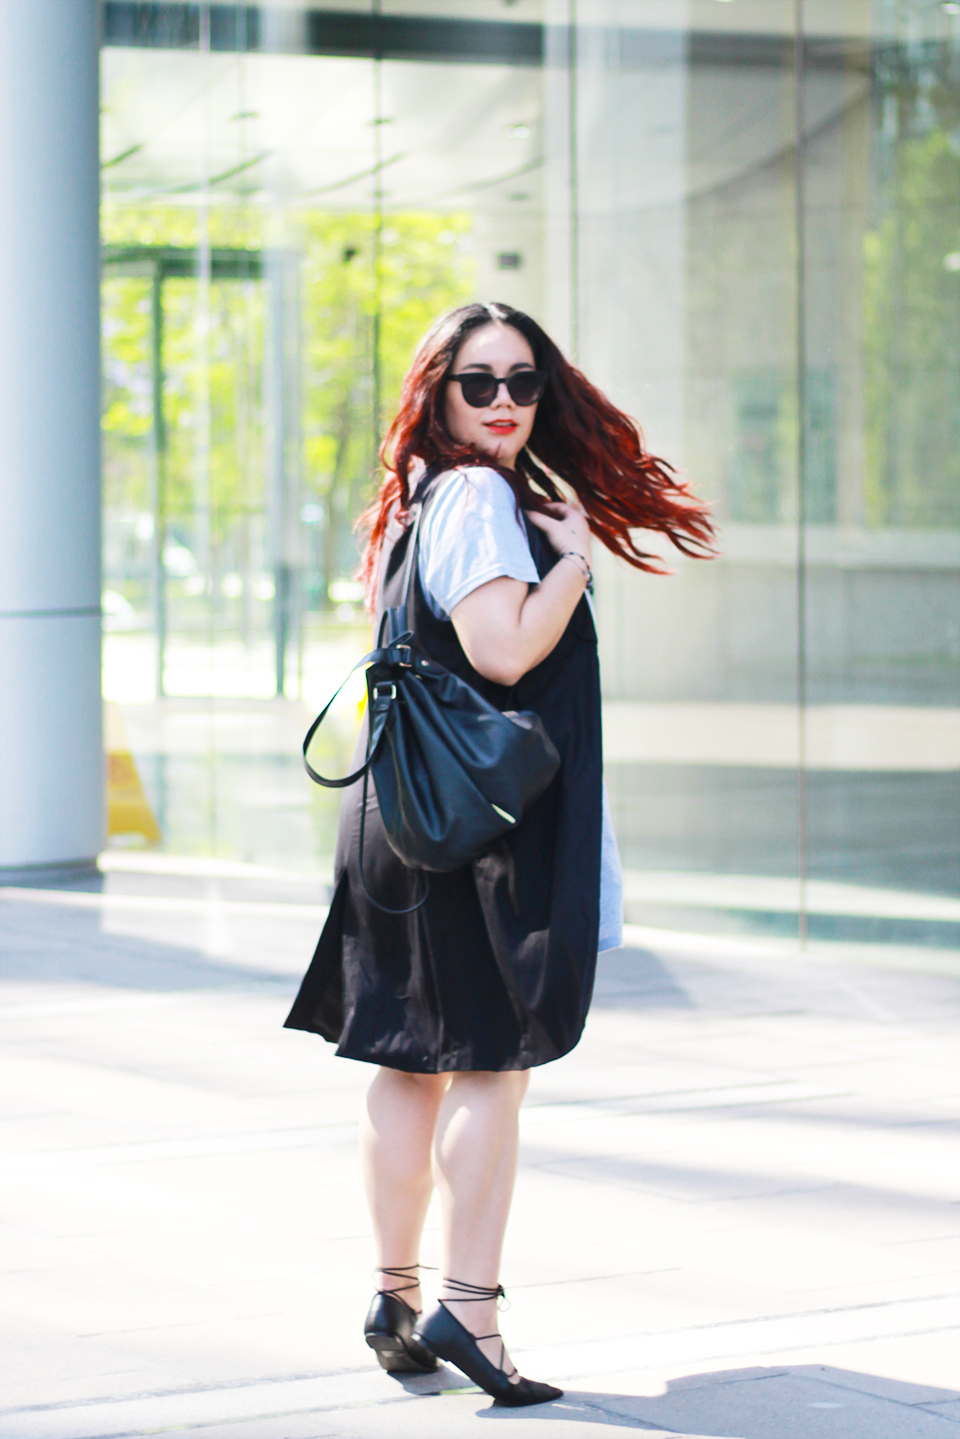 blogger-mexicana-lace-up-flats-bucket-bag-sleveless-blazer-gray-dress-red-hair-blogger-fashion-street-style